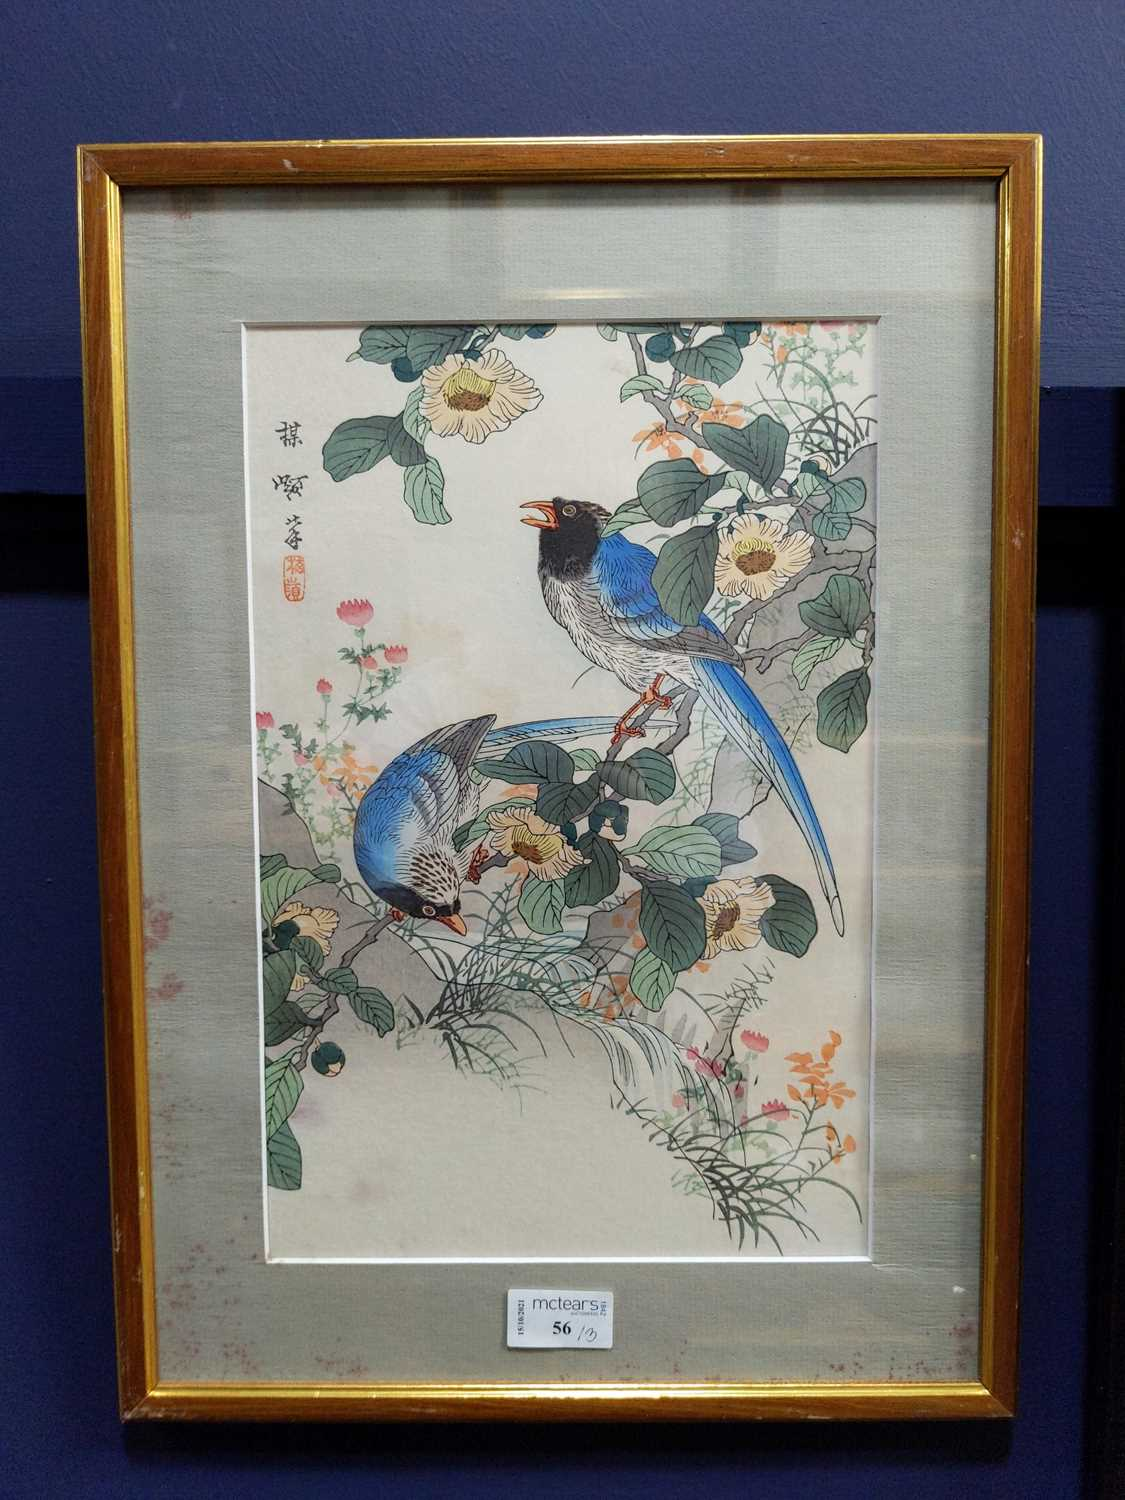 Lot 56 - A WOODBLOCK PRINT AFTER BAIREI KONO ALONG WITH TWO OTHER PICTURES